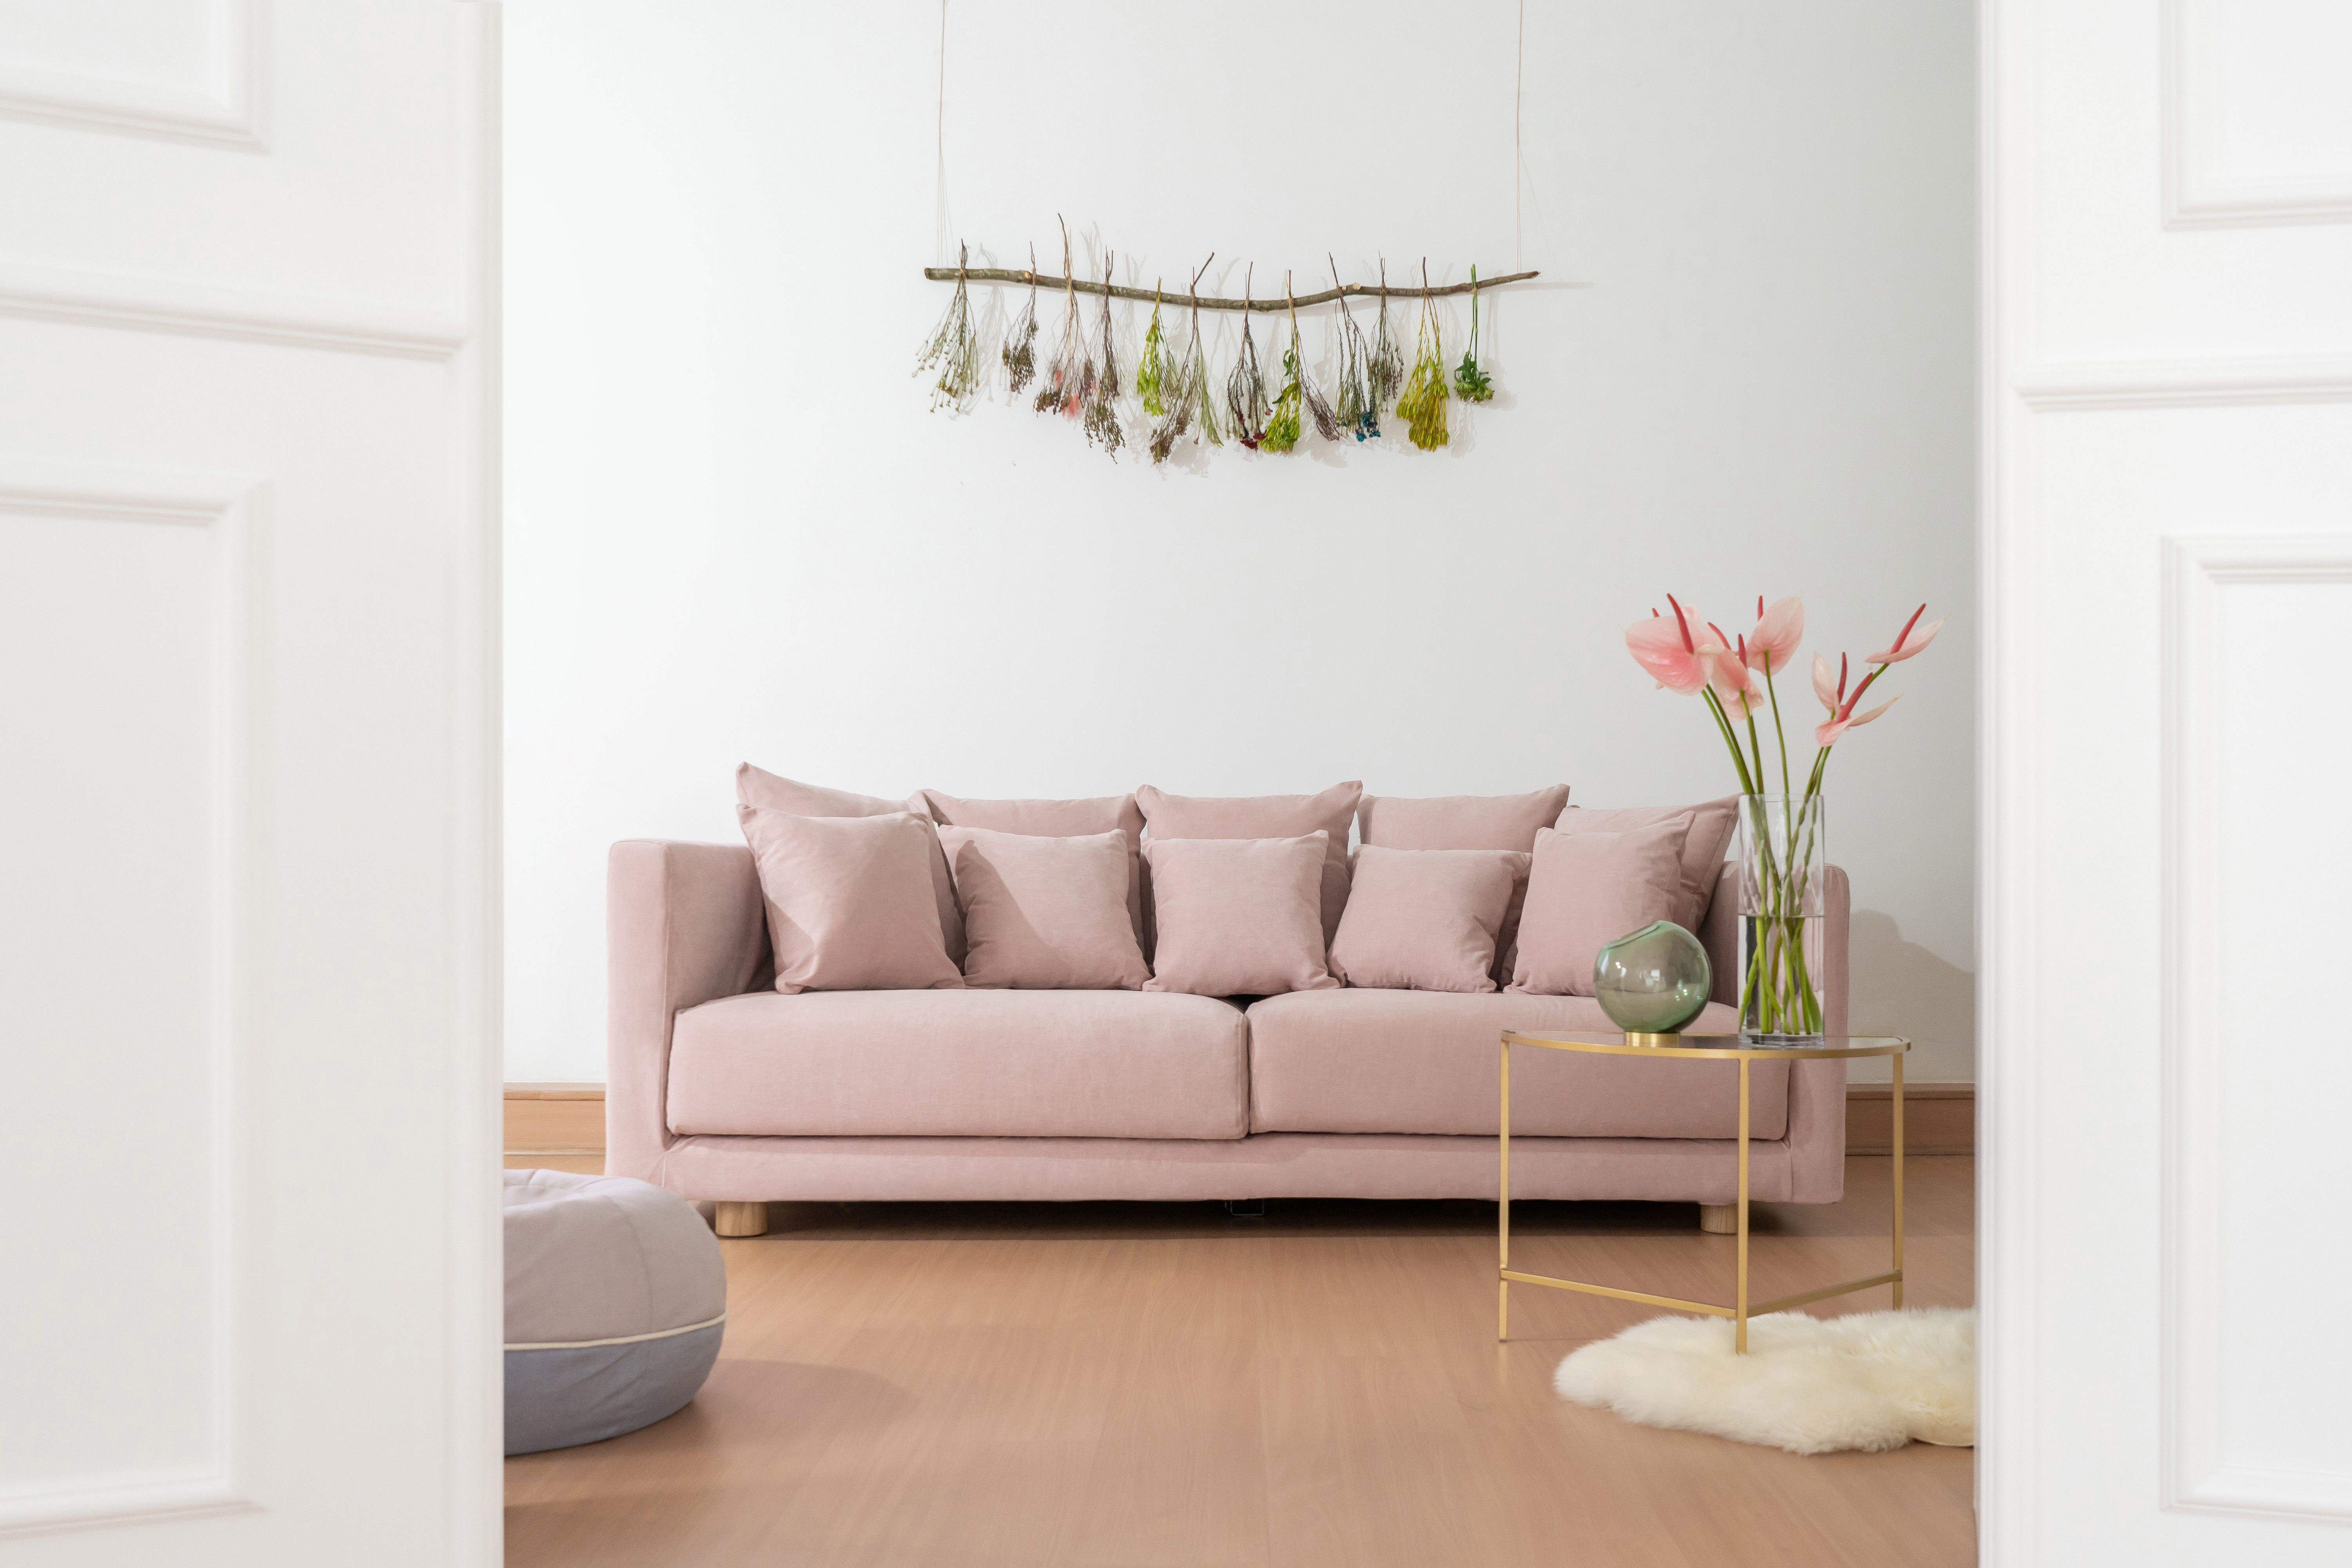 Custom Slipcovers For Ikea Stockholm 2017 Sofa In Our Madison Cotton Fabric Our New Durable Washable Cottons Are S Ikea Sofa Ikea Sofa Covers Ikea Bed Frames